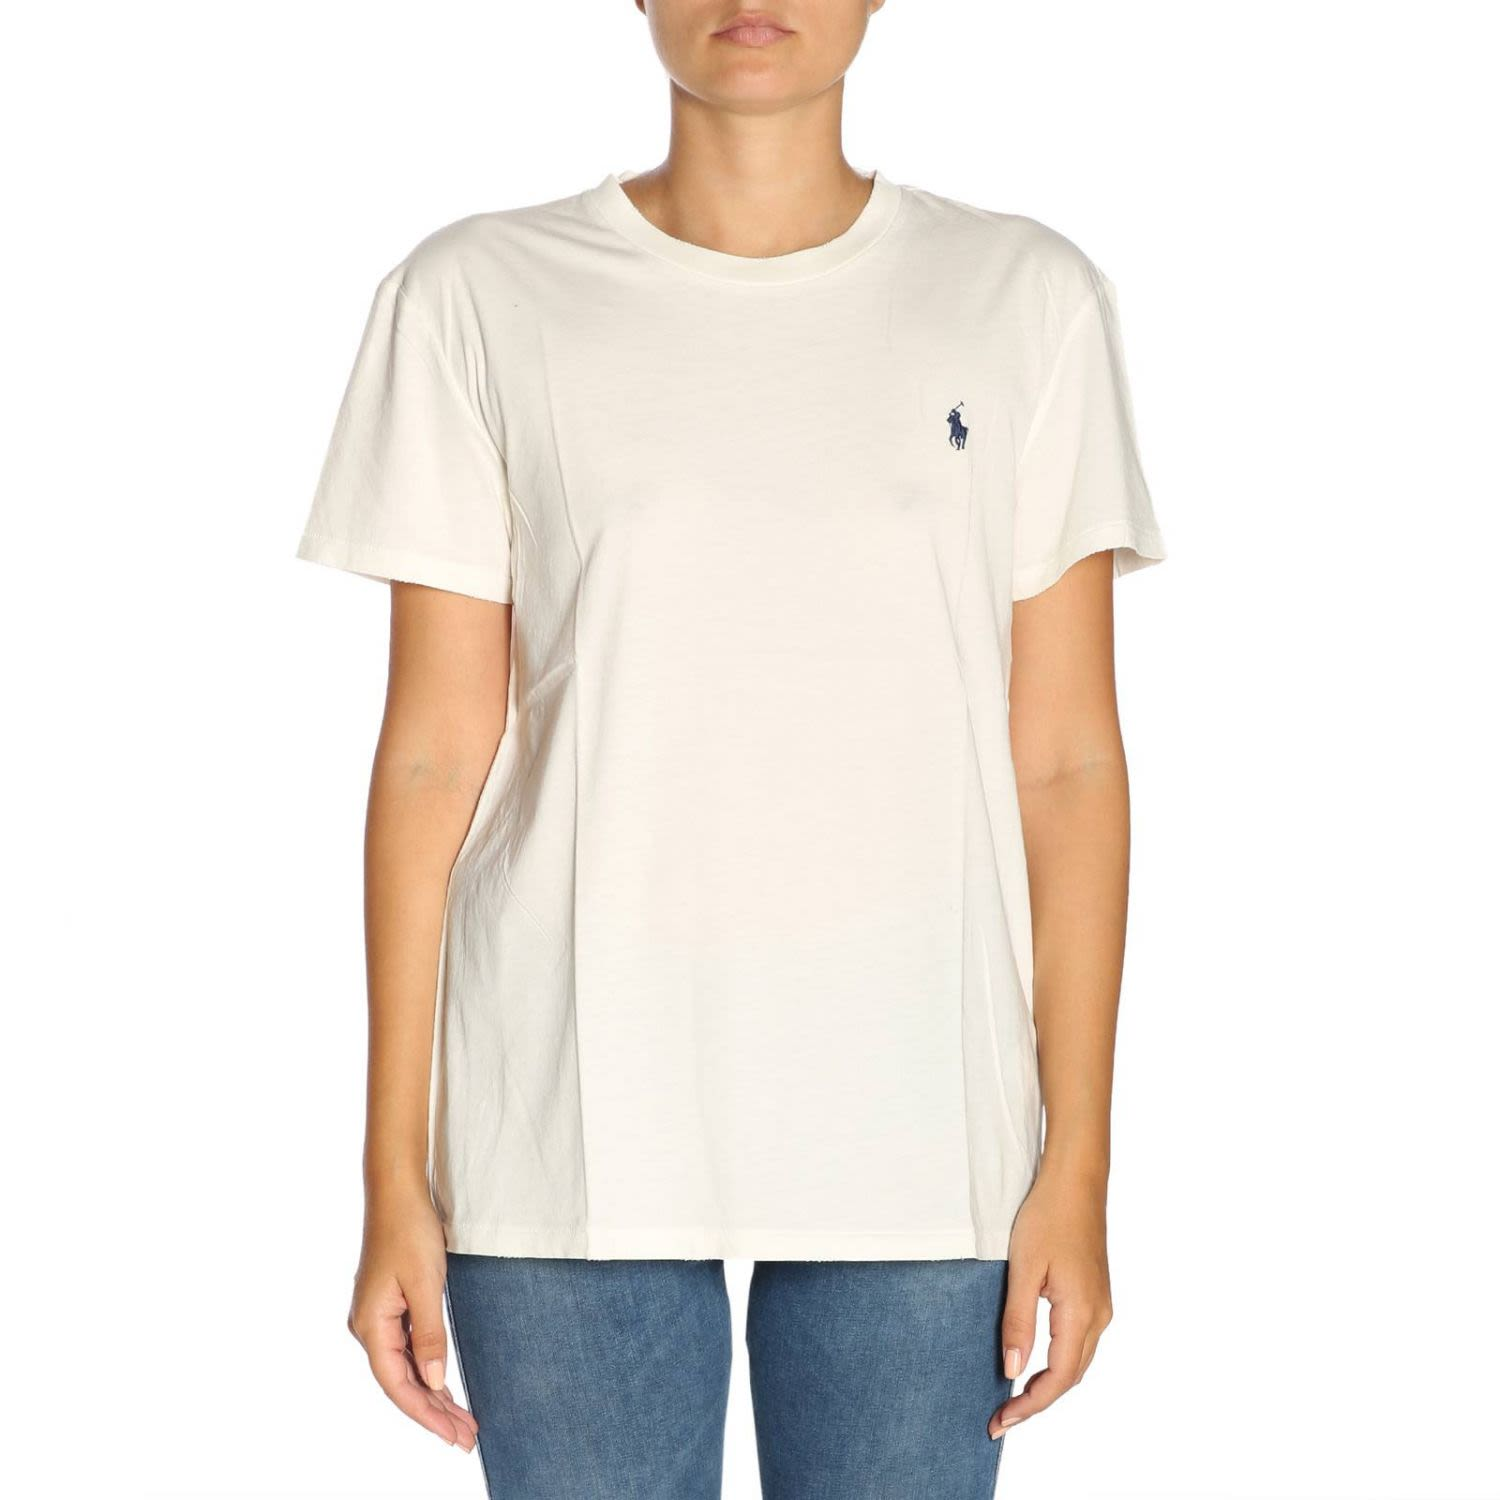 T-SHIRT T-SHIRT WOMEN POLO RALPH LAUREN